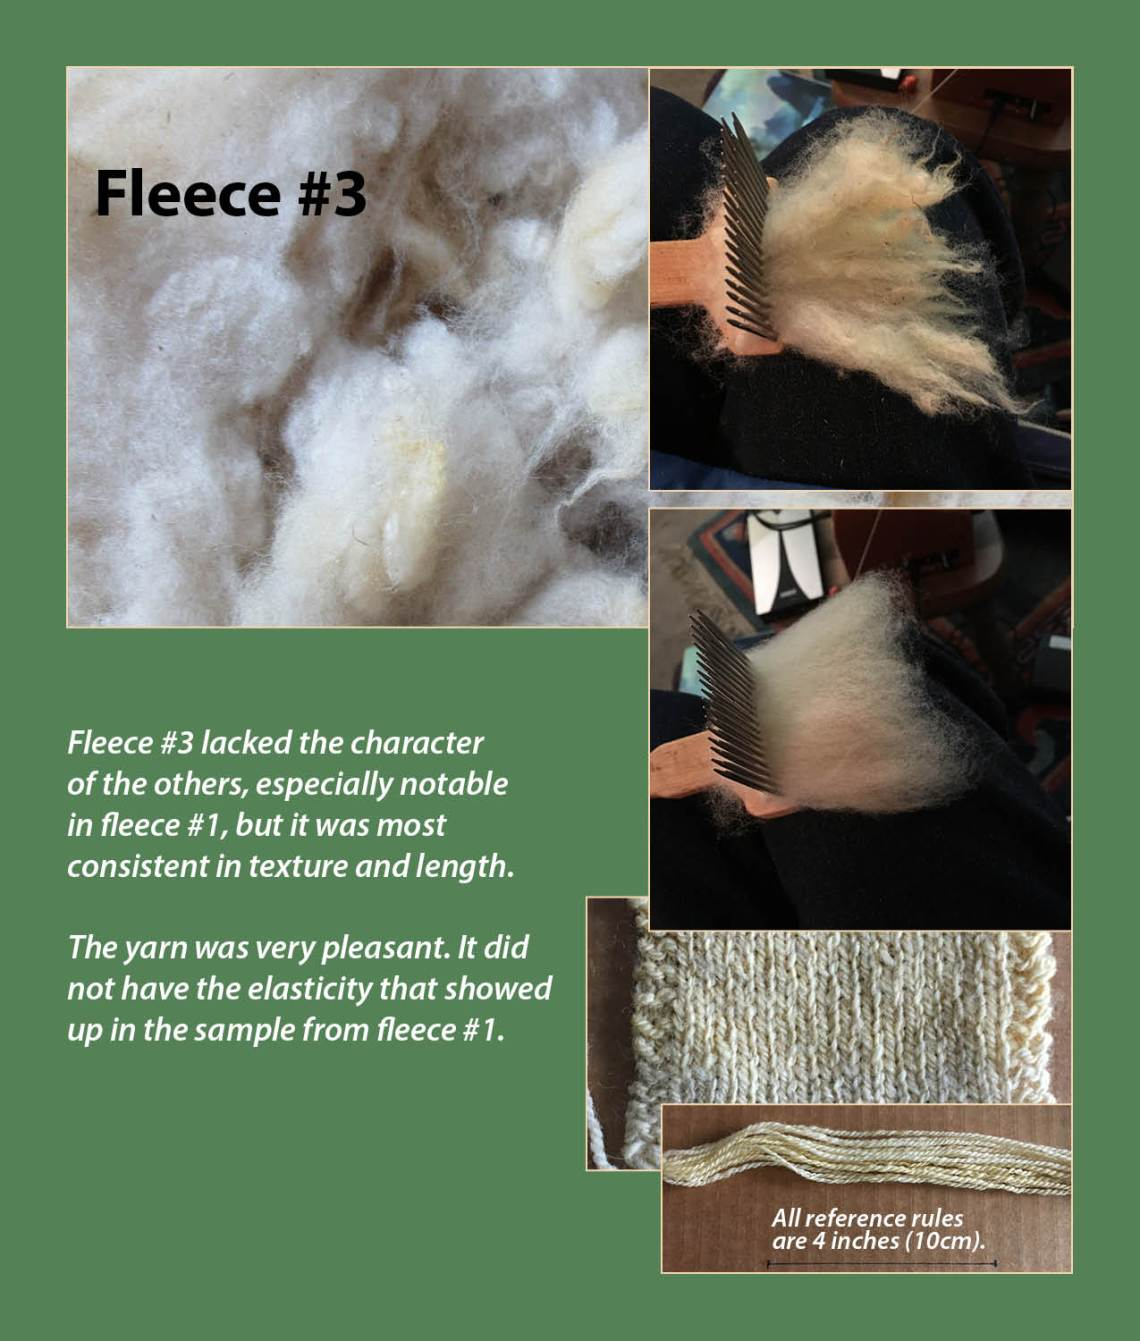 Fleece #3 lacked the character of the others, especially notable in fleece #1, but it was most consistent in texture and length. The yarn was very pleasant. It did not have the elasticity that showed up in the sample from fleece #1.